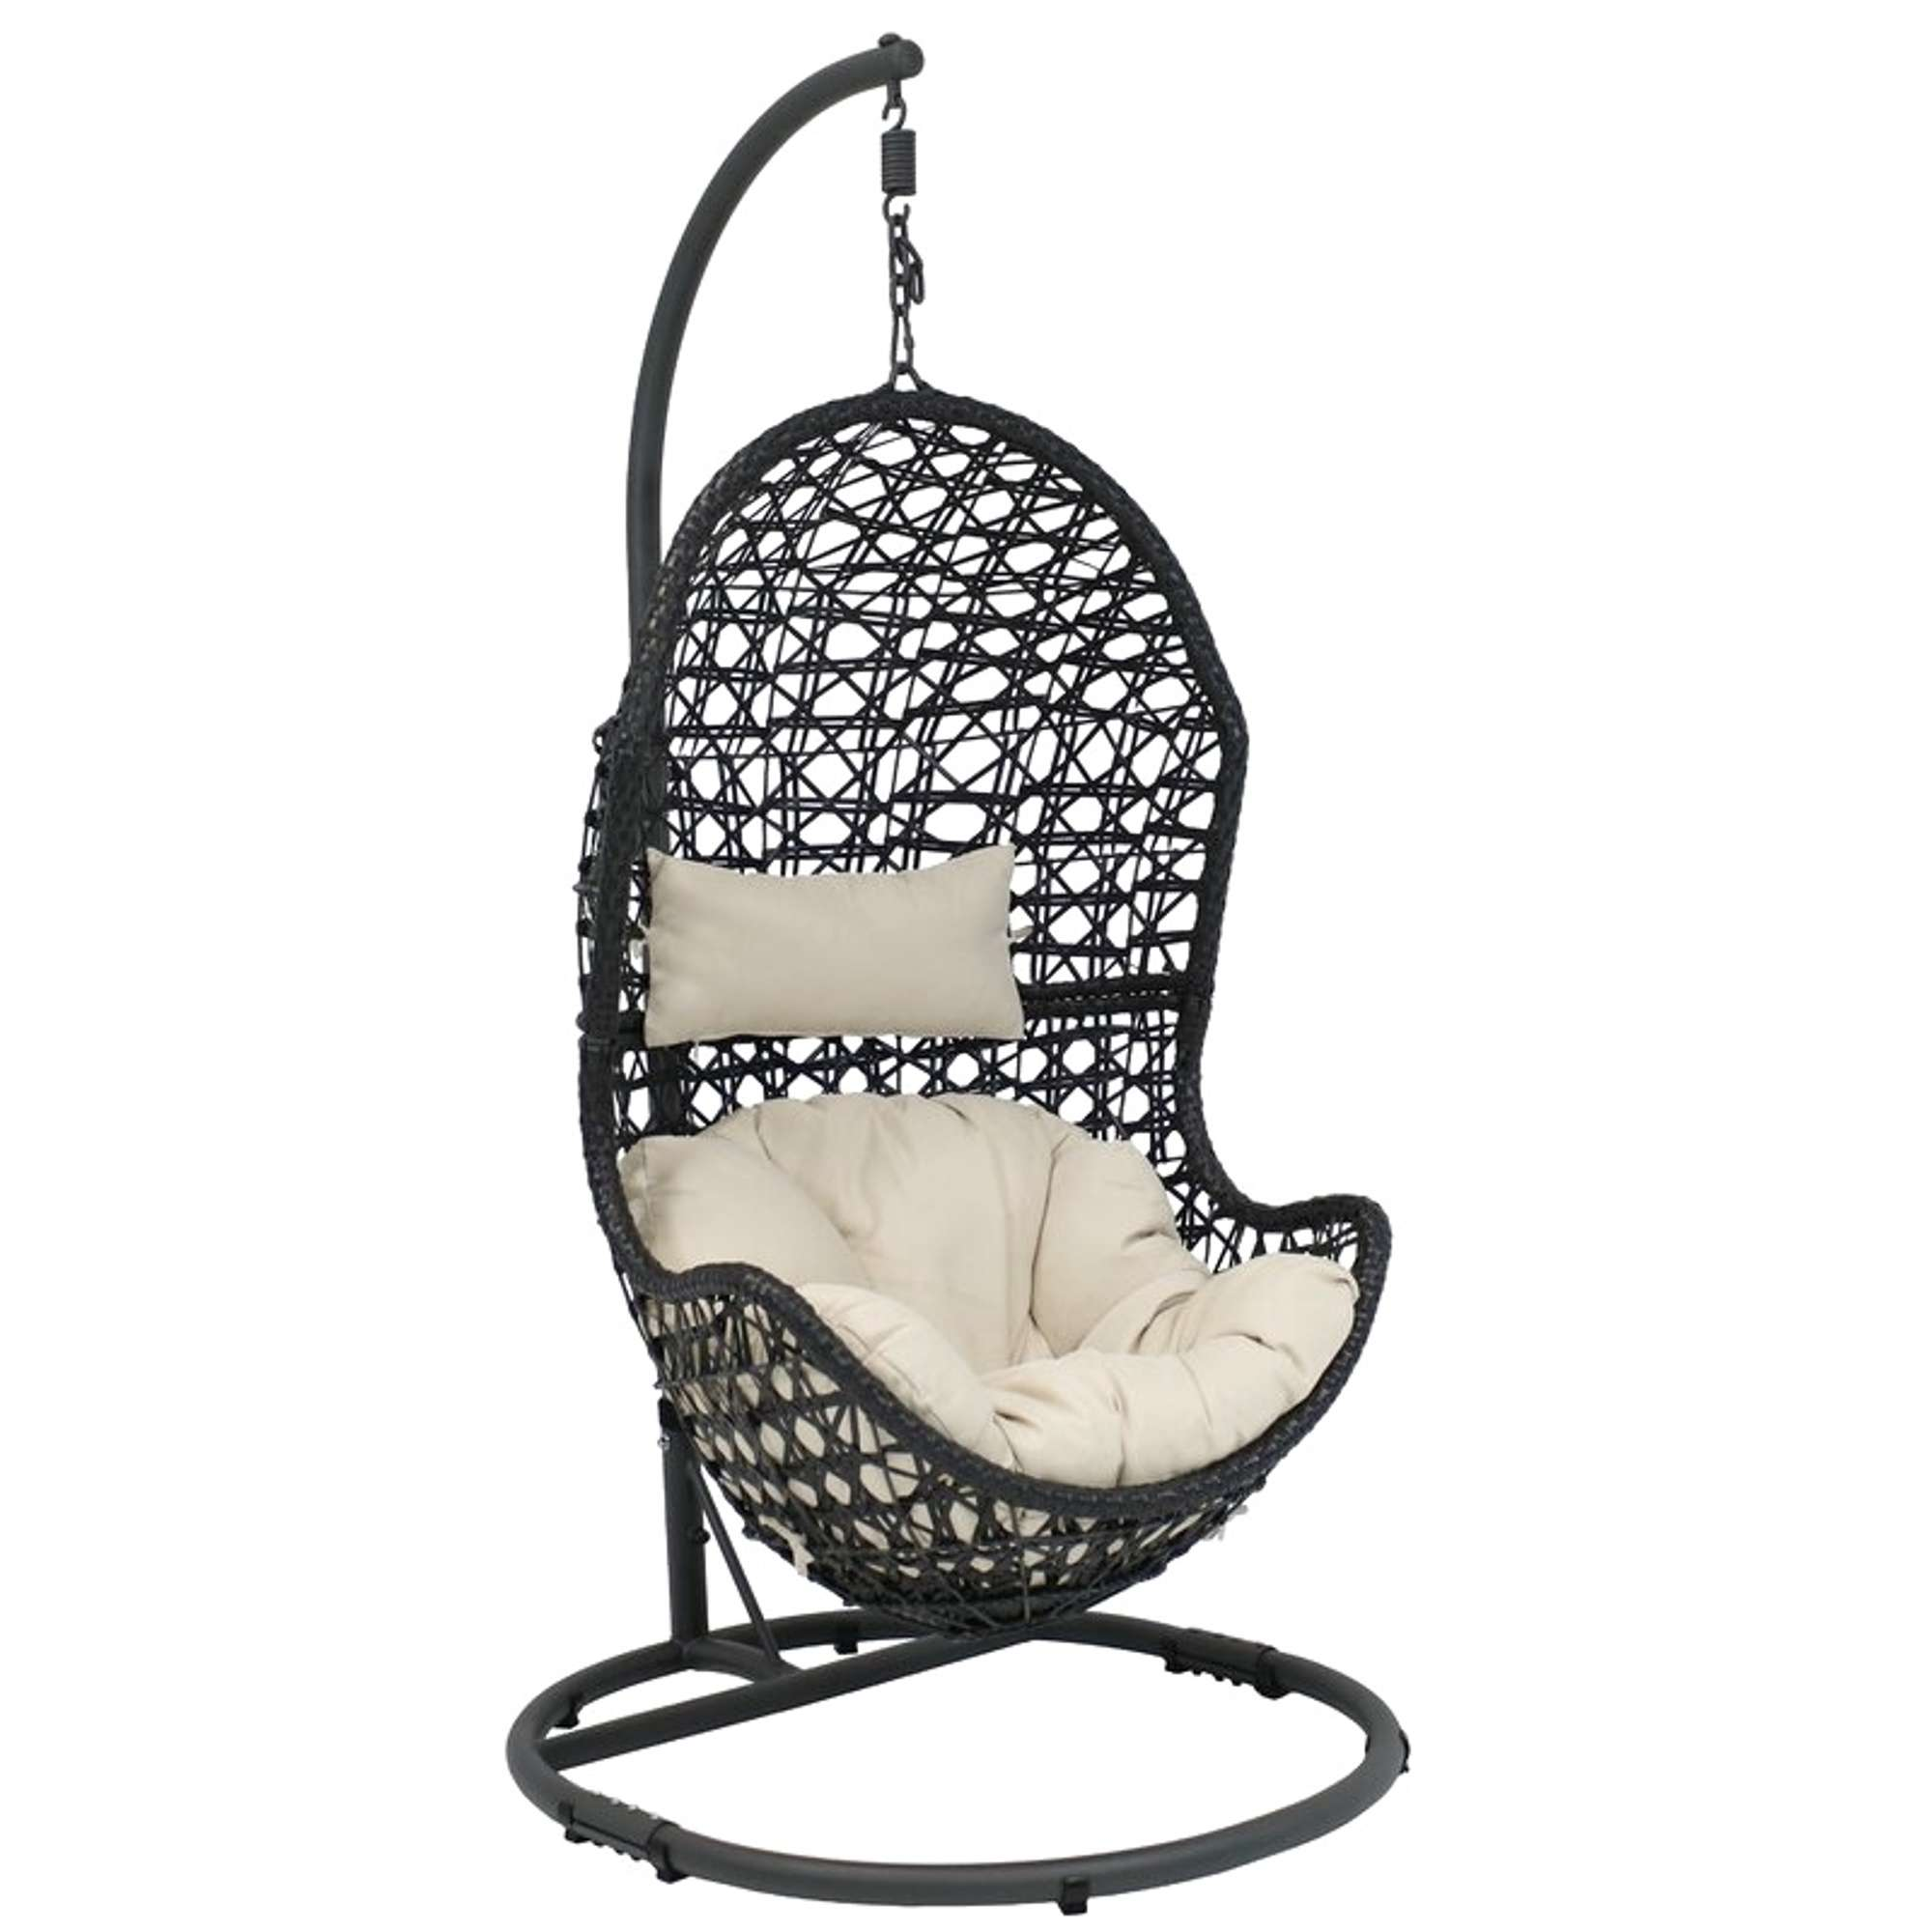 Beige Abrams Hanging Egg Chair Hammock W/ Stand 2 ...